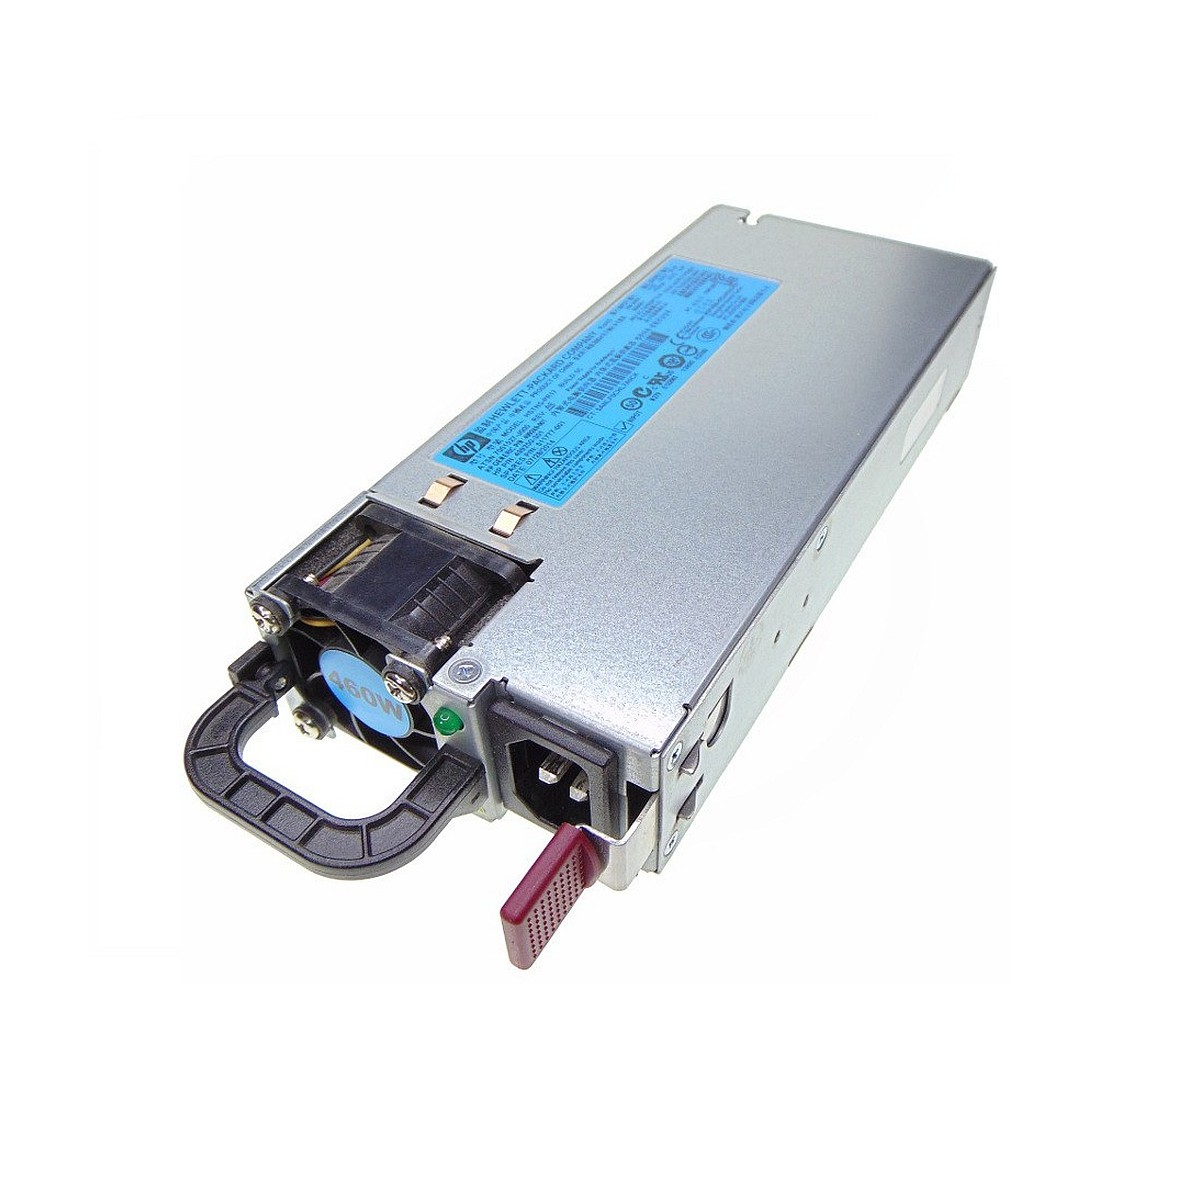 DYSK DELL ENTERPRISE 2TB SATA 7.2K 6G 3,5 02G4HM